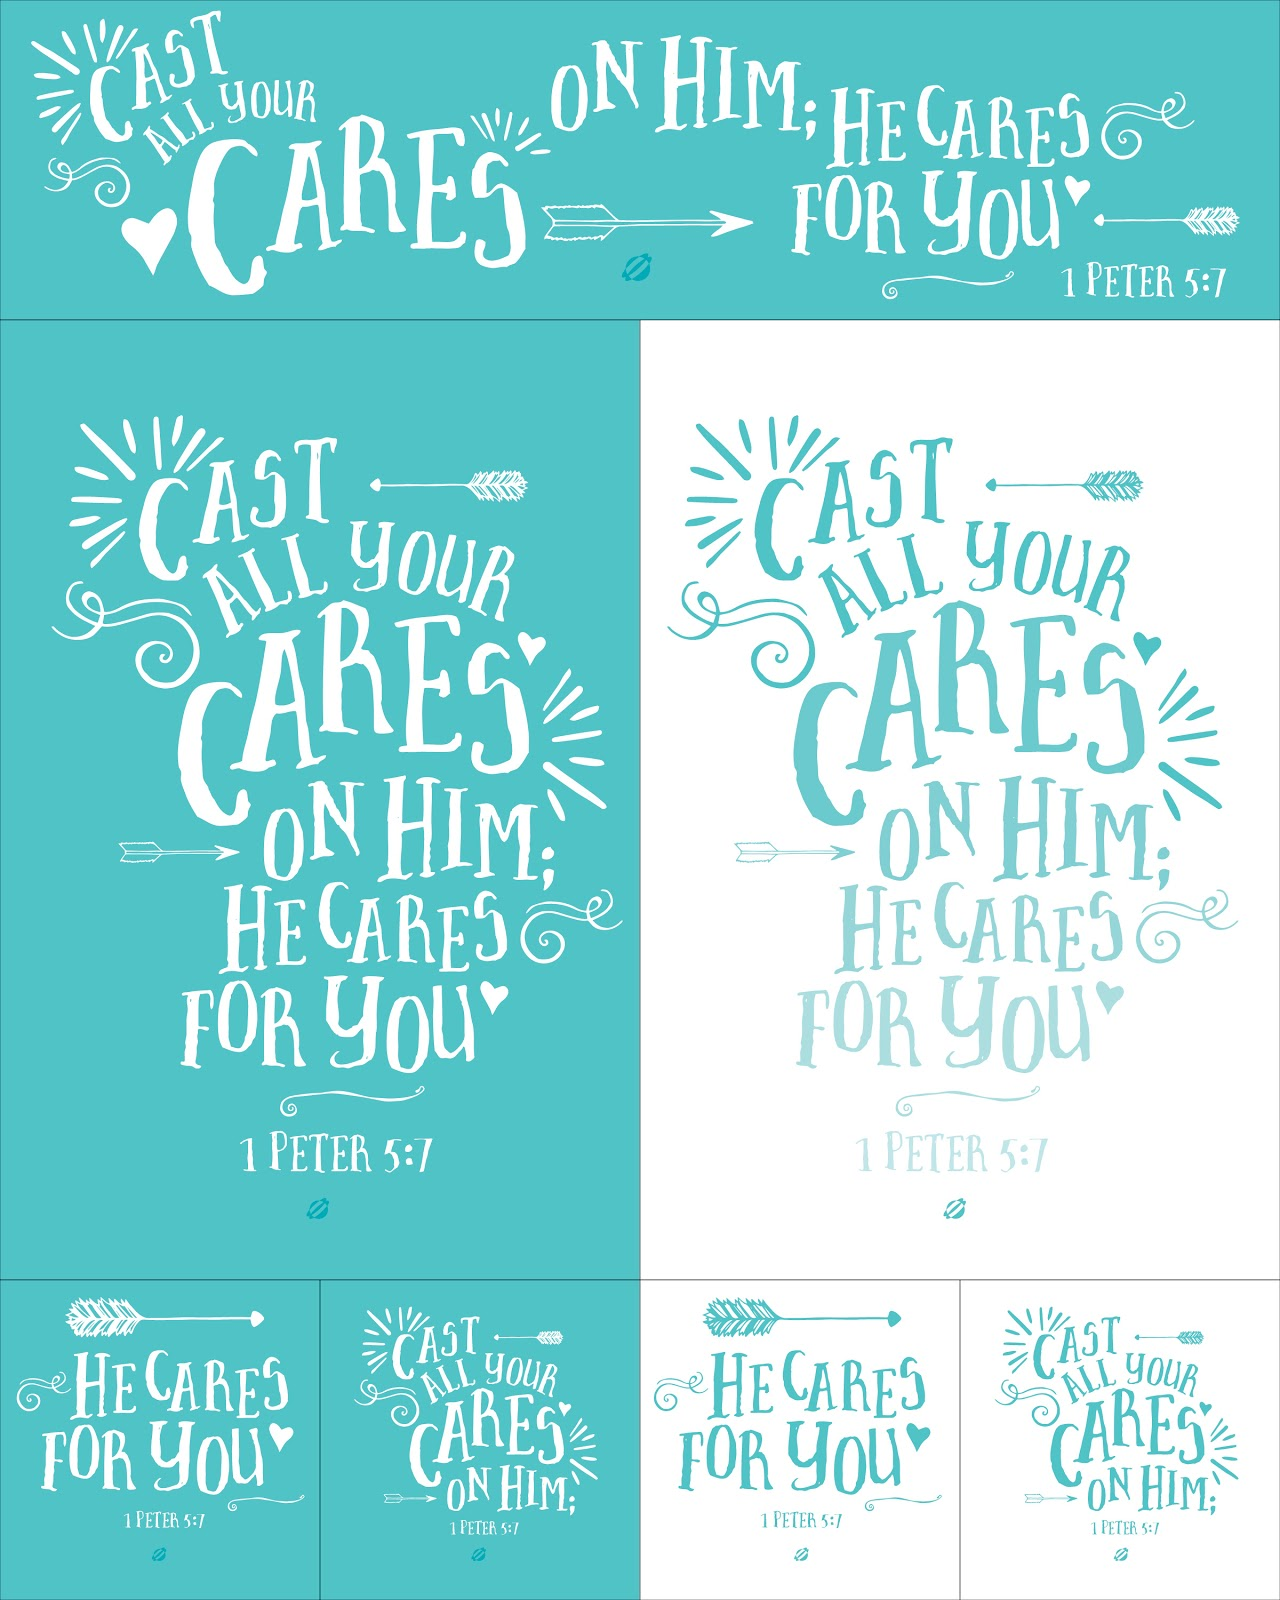 LostBumblebee 2014 Printable Pages CAST YOUR CARES Free printable- for Personal use